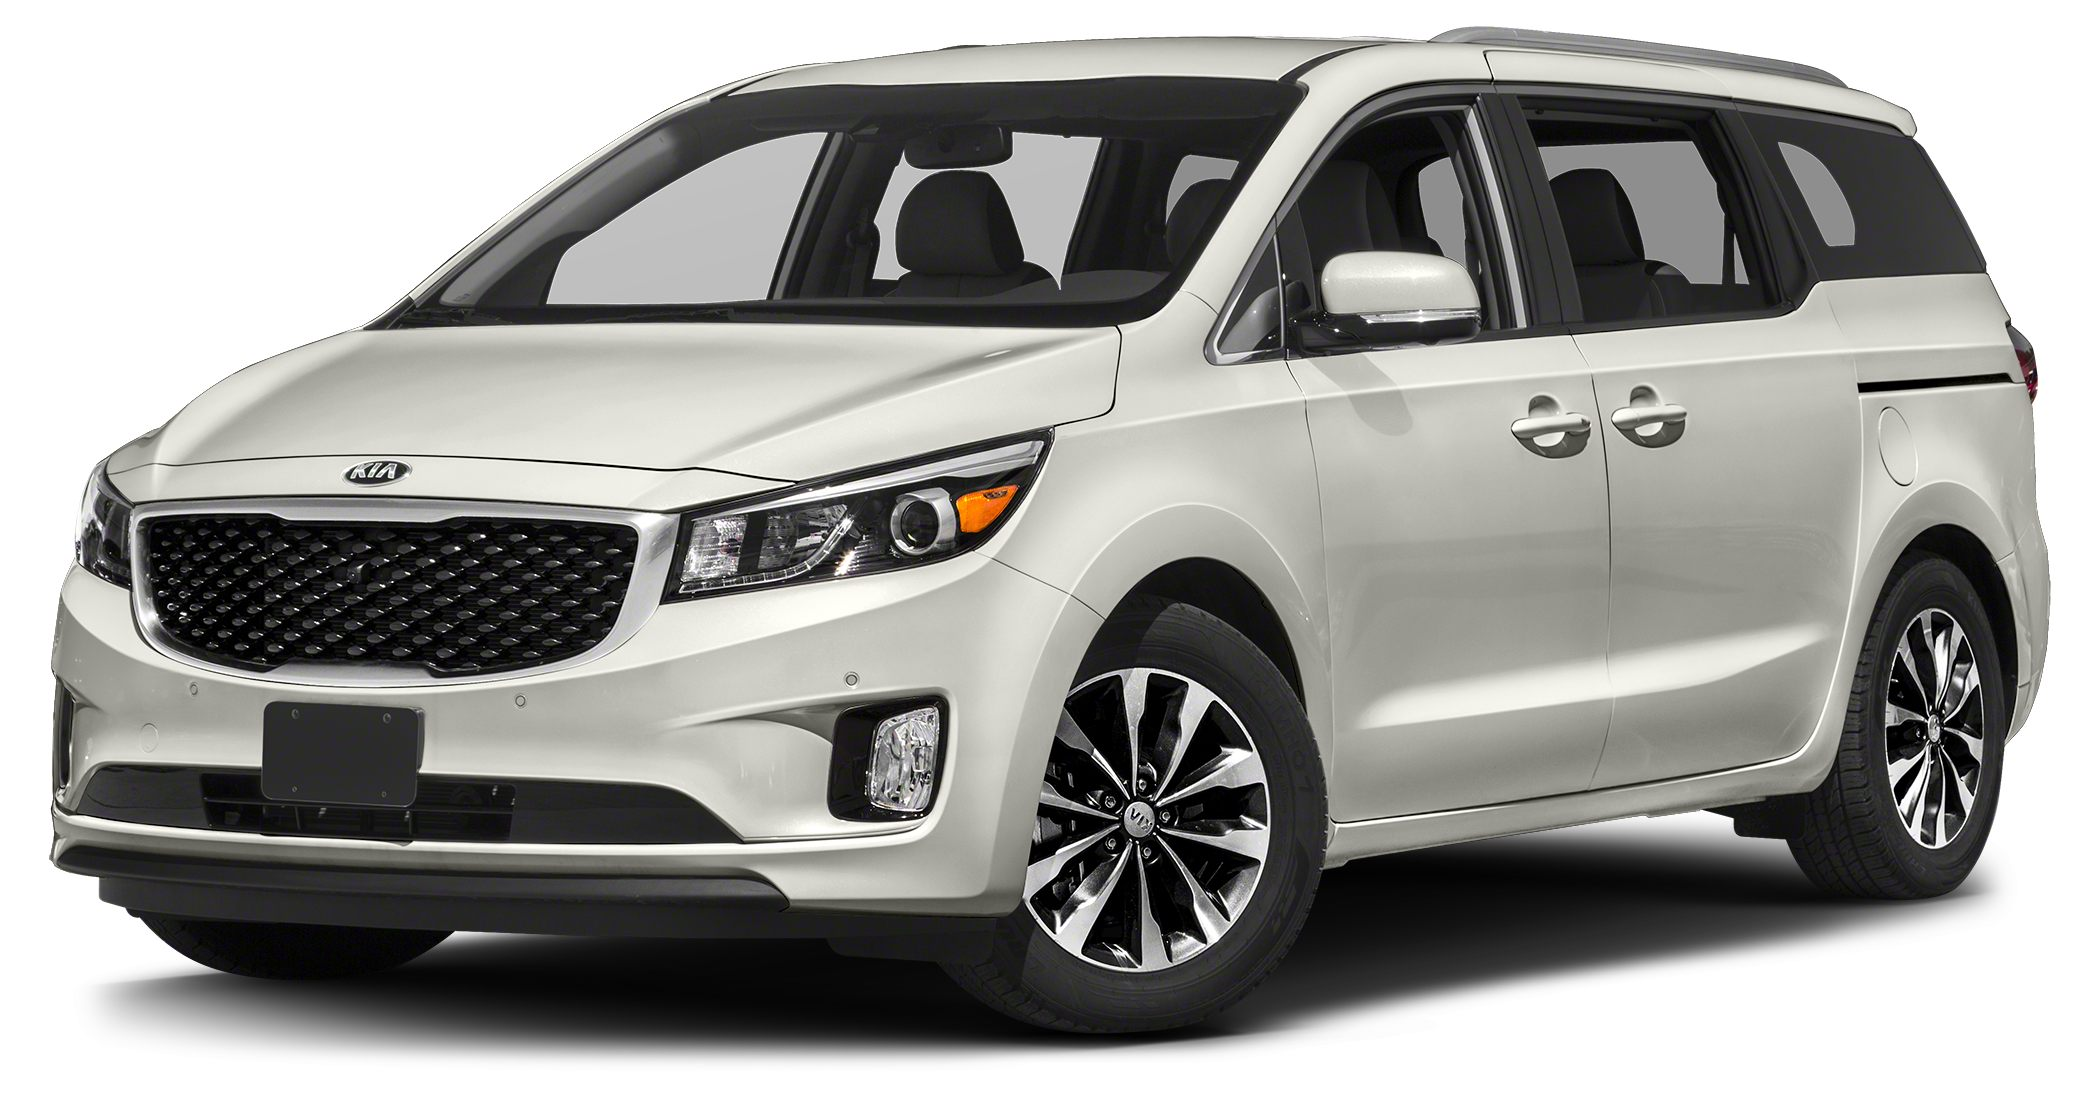 2018 Kia Sedona SX Transform your drive with the 2018 Kia Sedona The Sedona breaks convention and